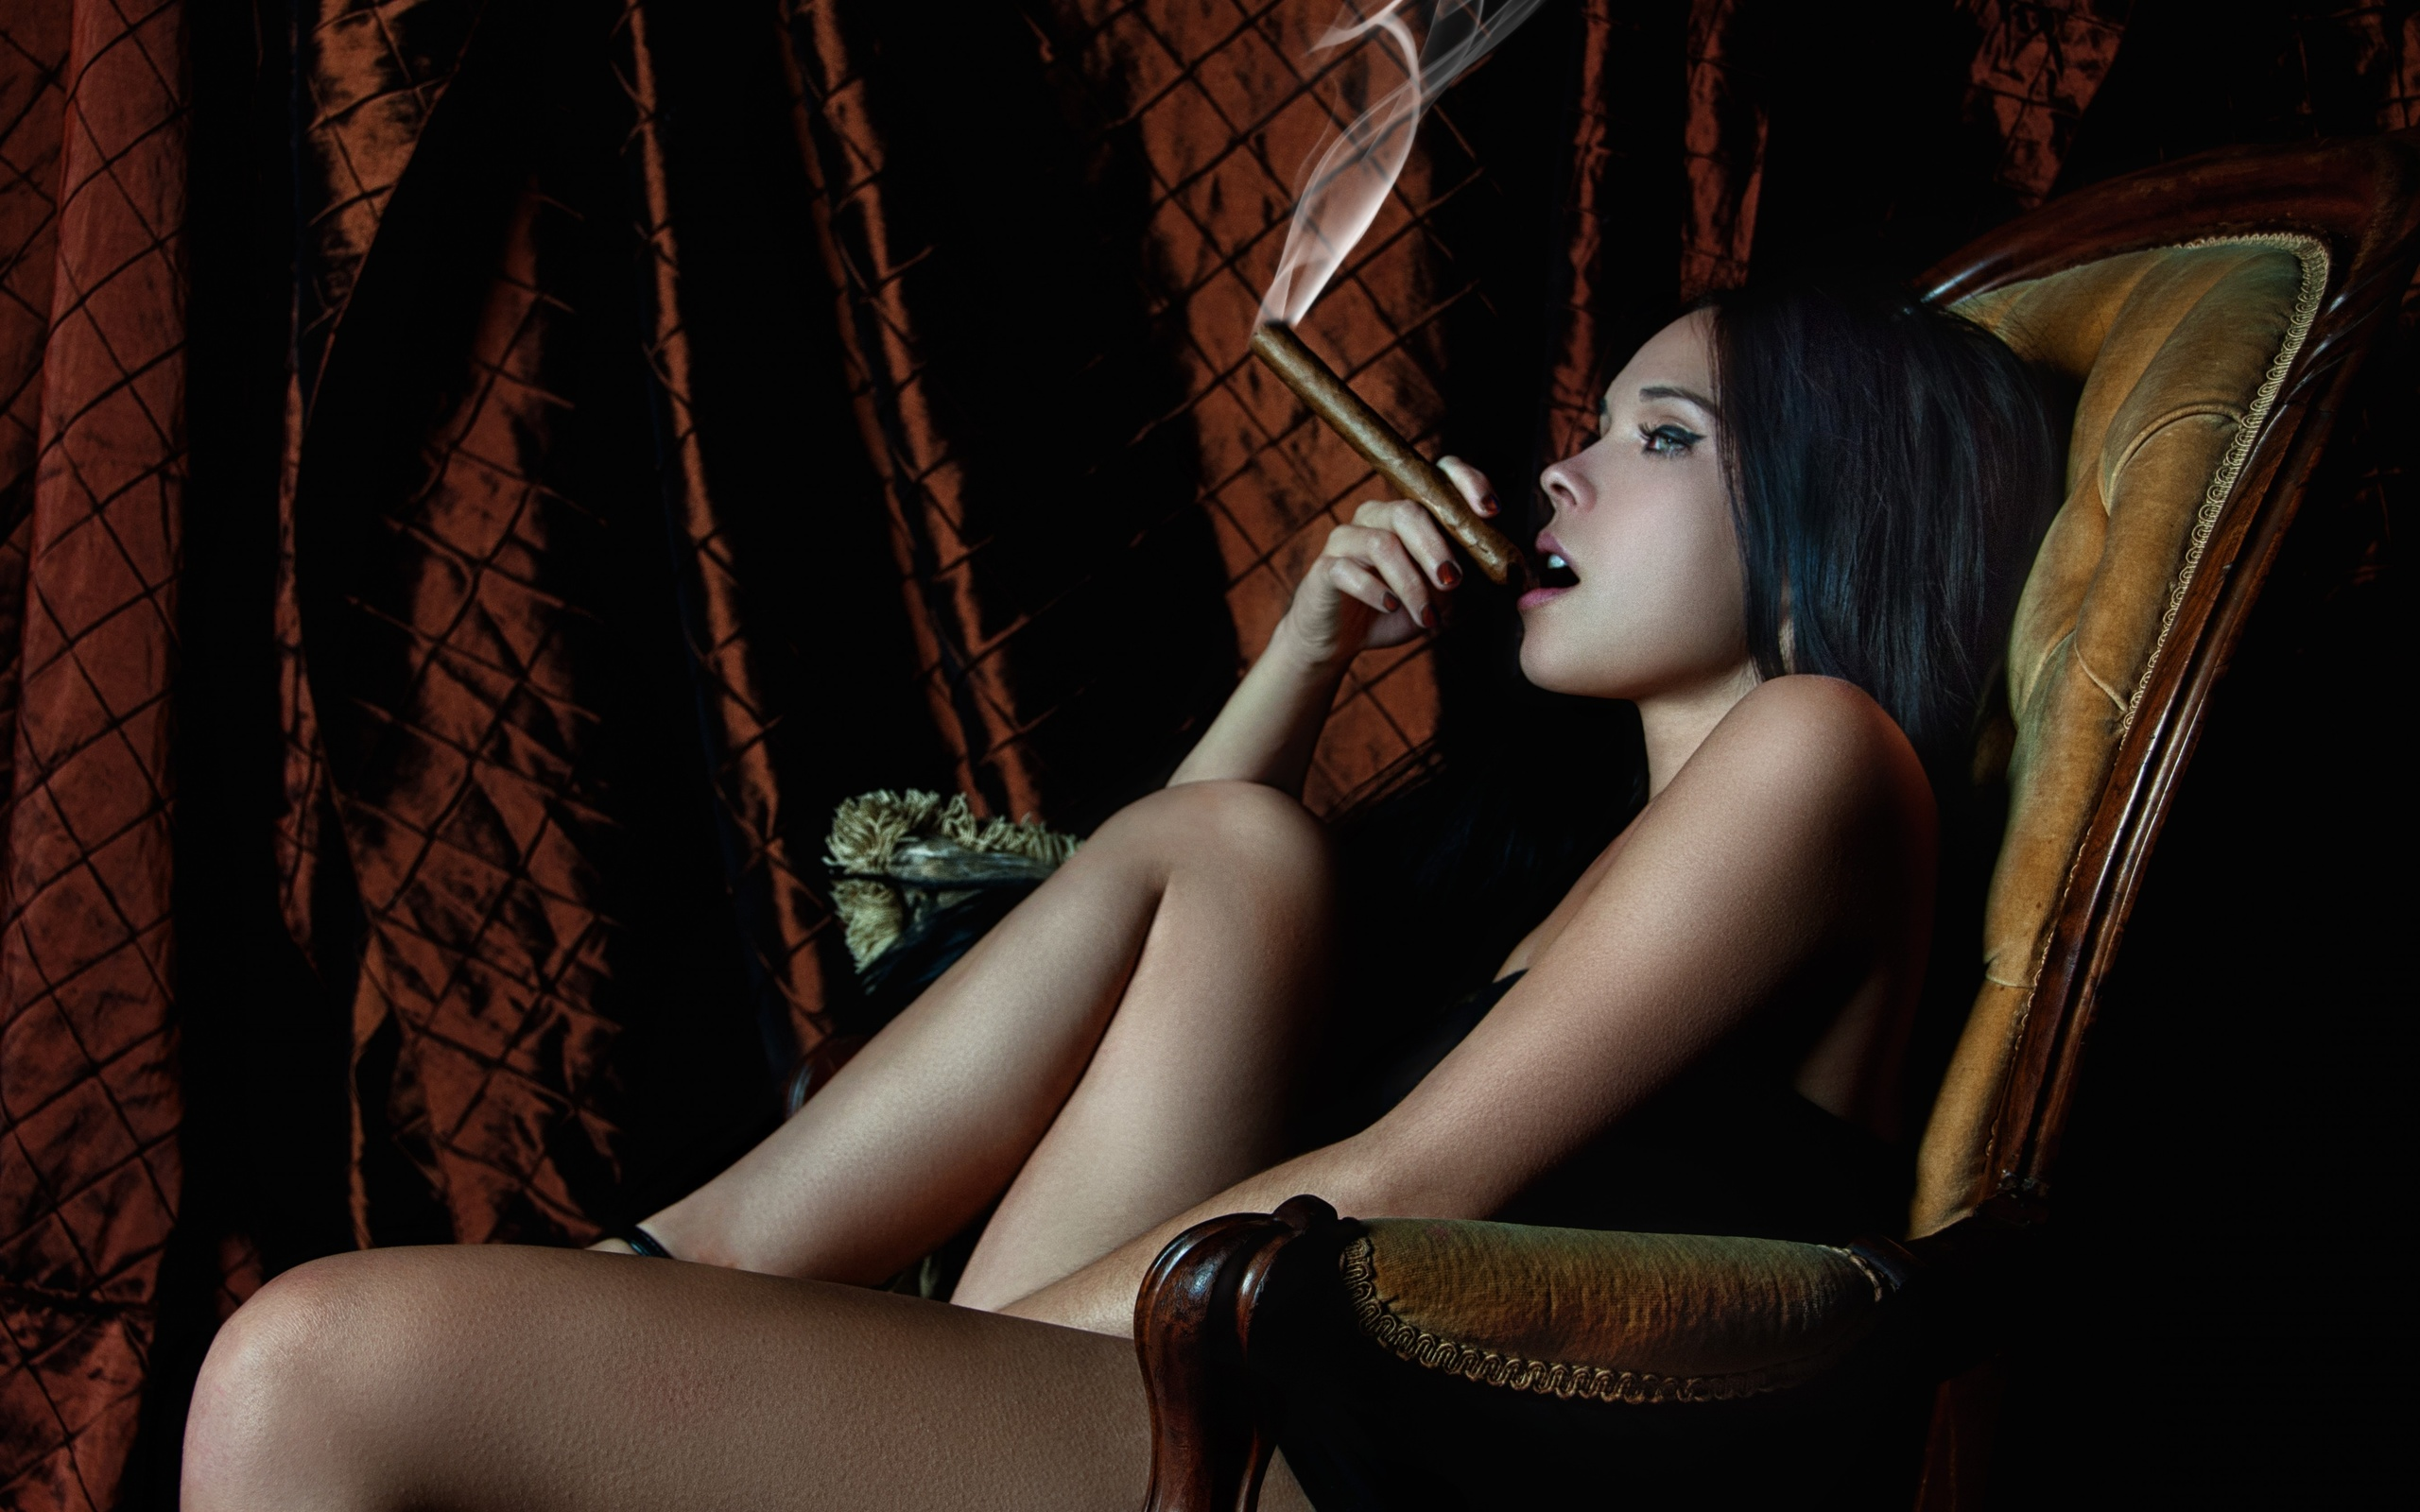 Images Of Nude Black Women With Cigarettes